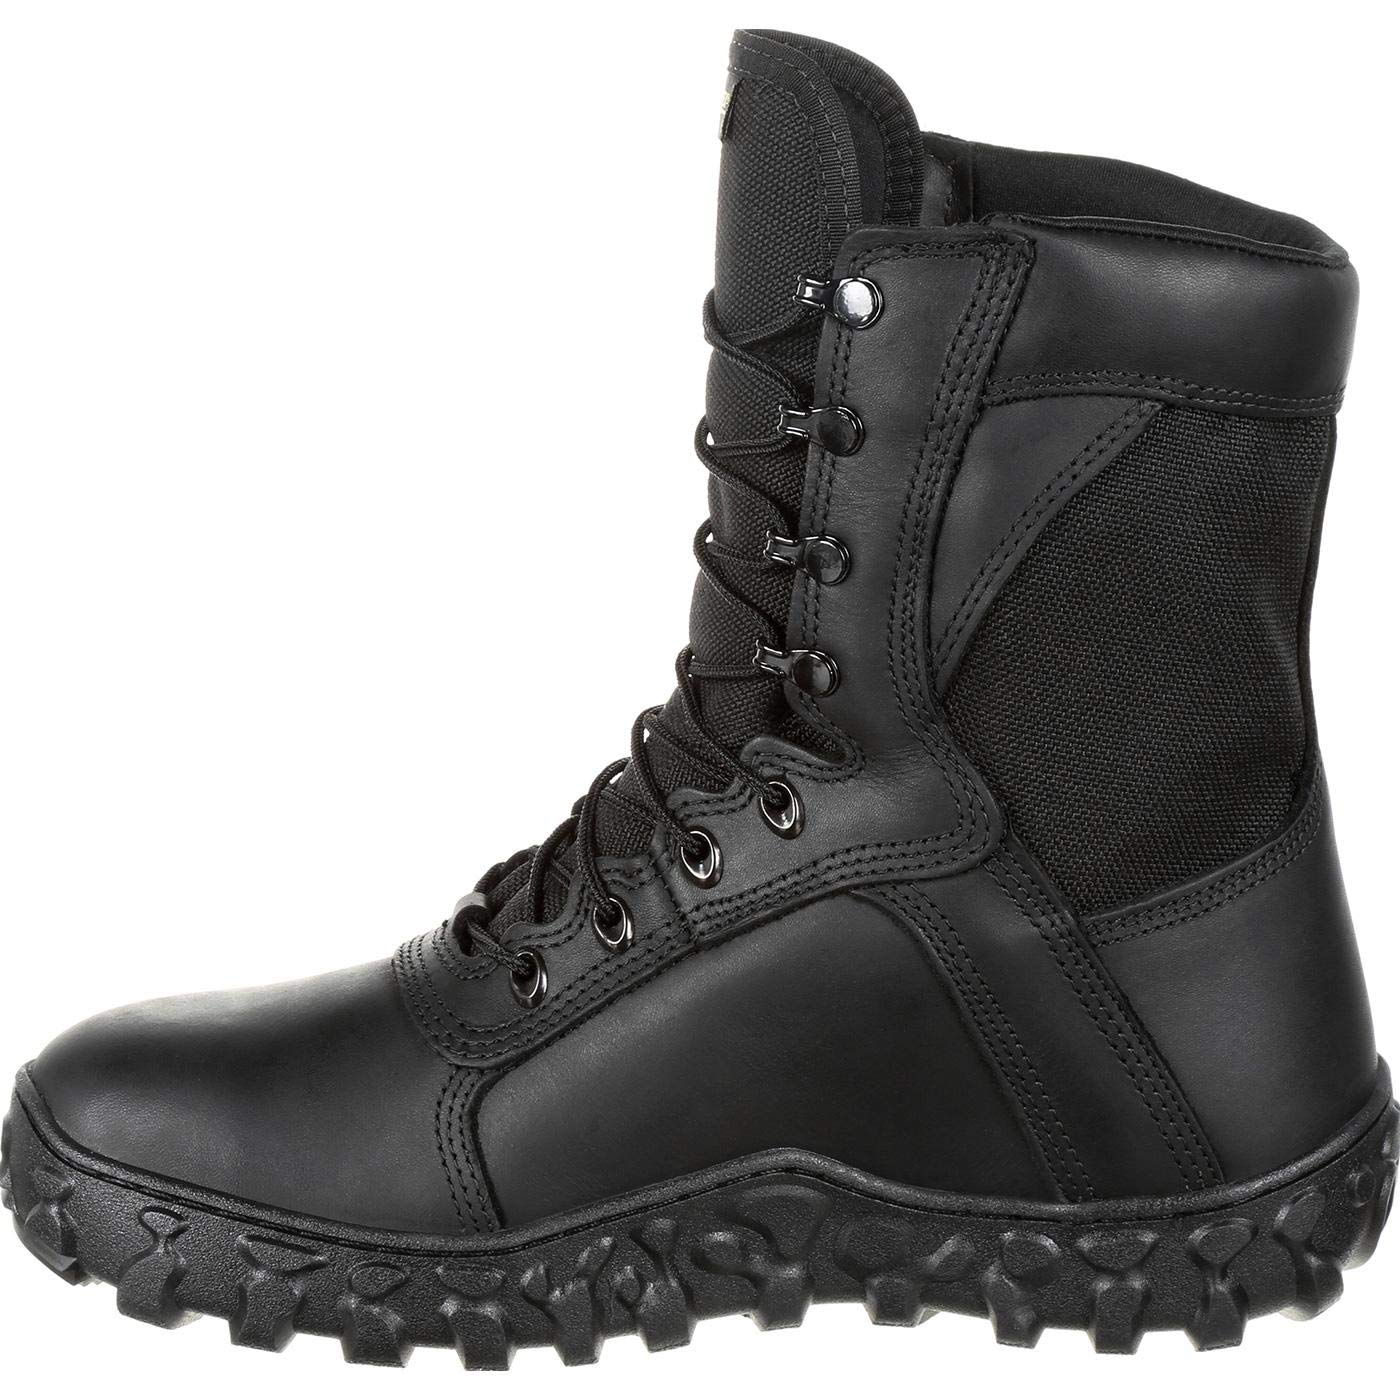 Rocky Mens 8 S2V Flight 600g Insulated Gore-Tex Military Boots